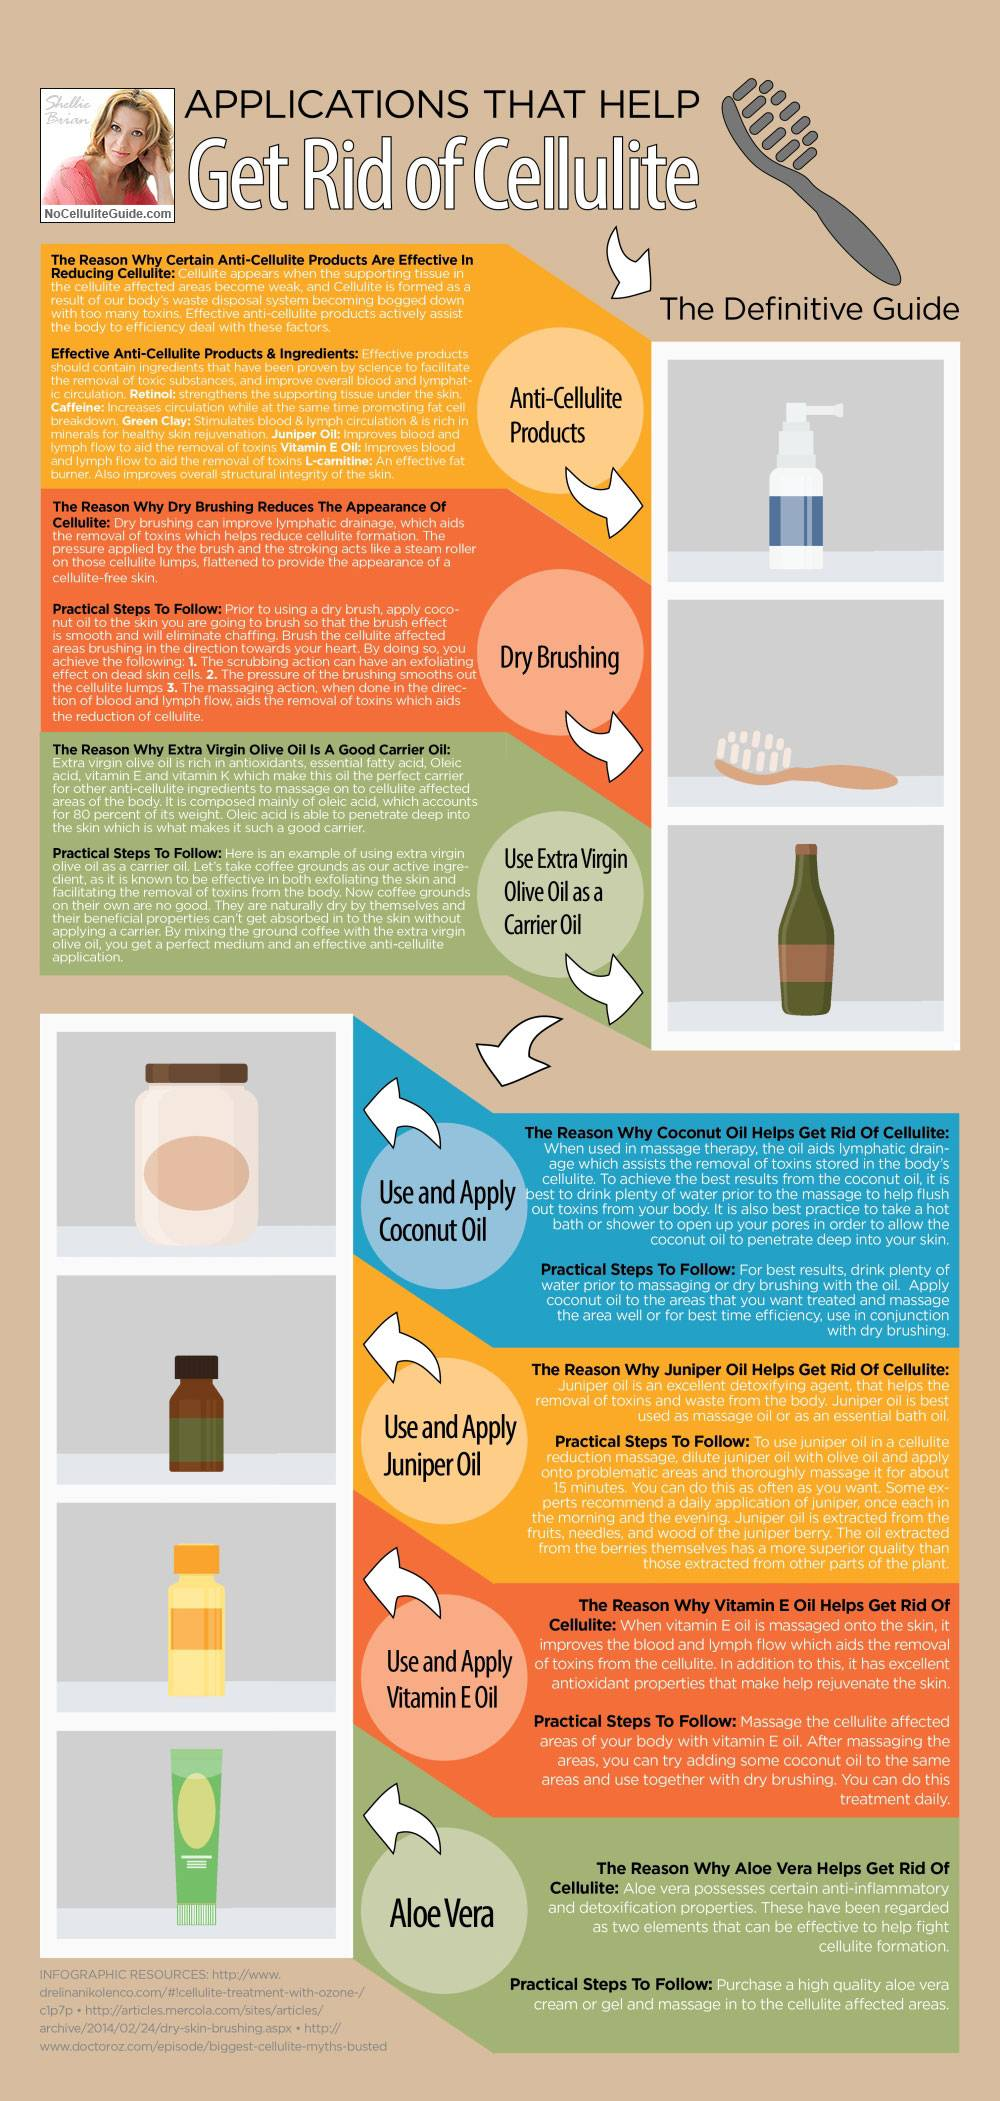 Applications that Gets Rid of Cellulite - The Definitive Guide (Infographic)